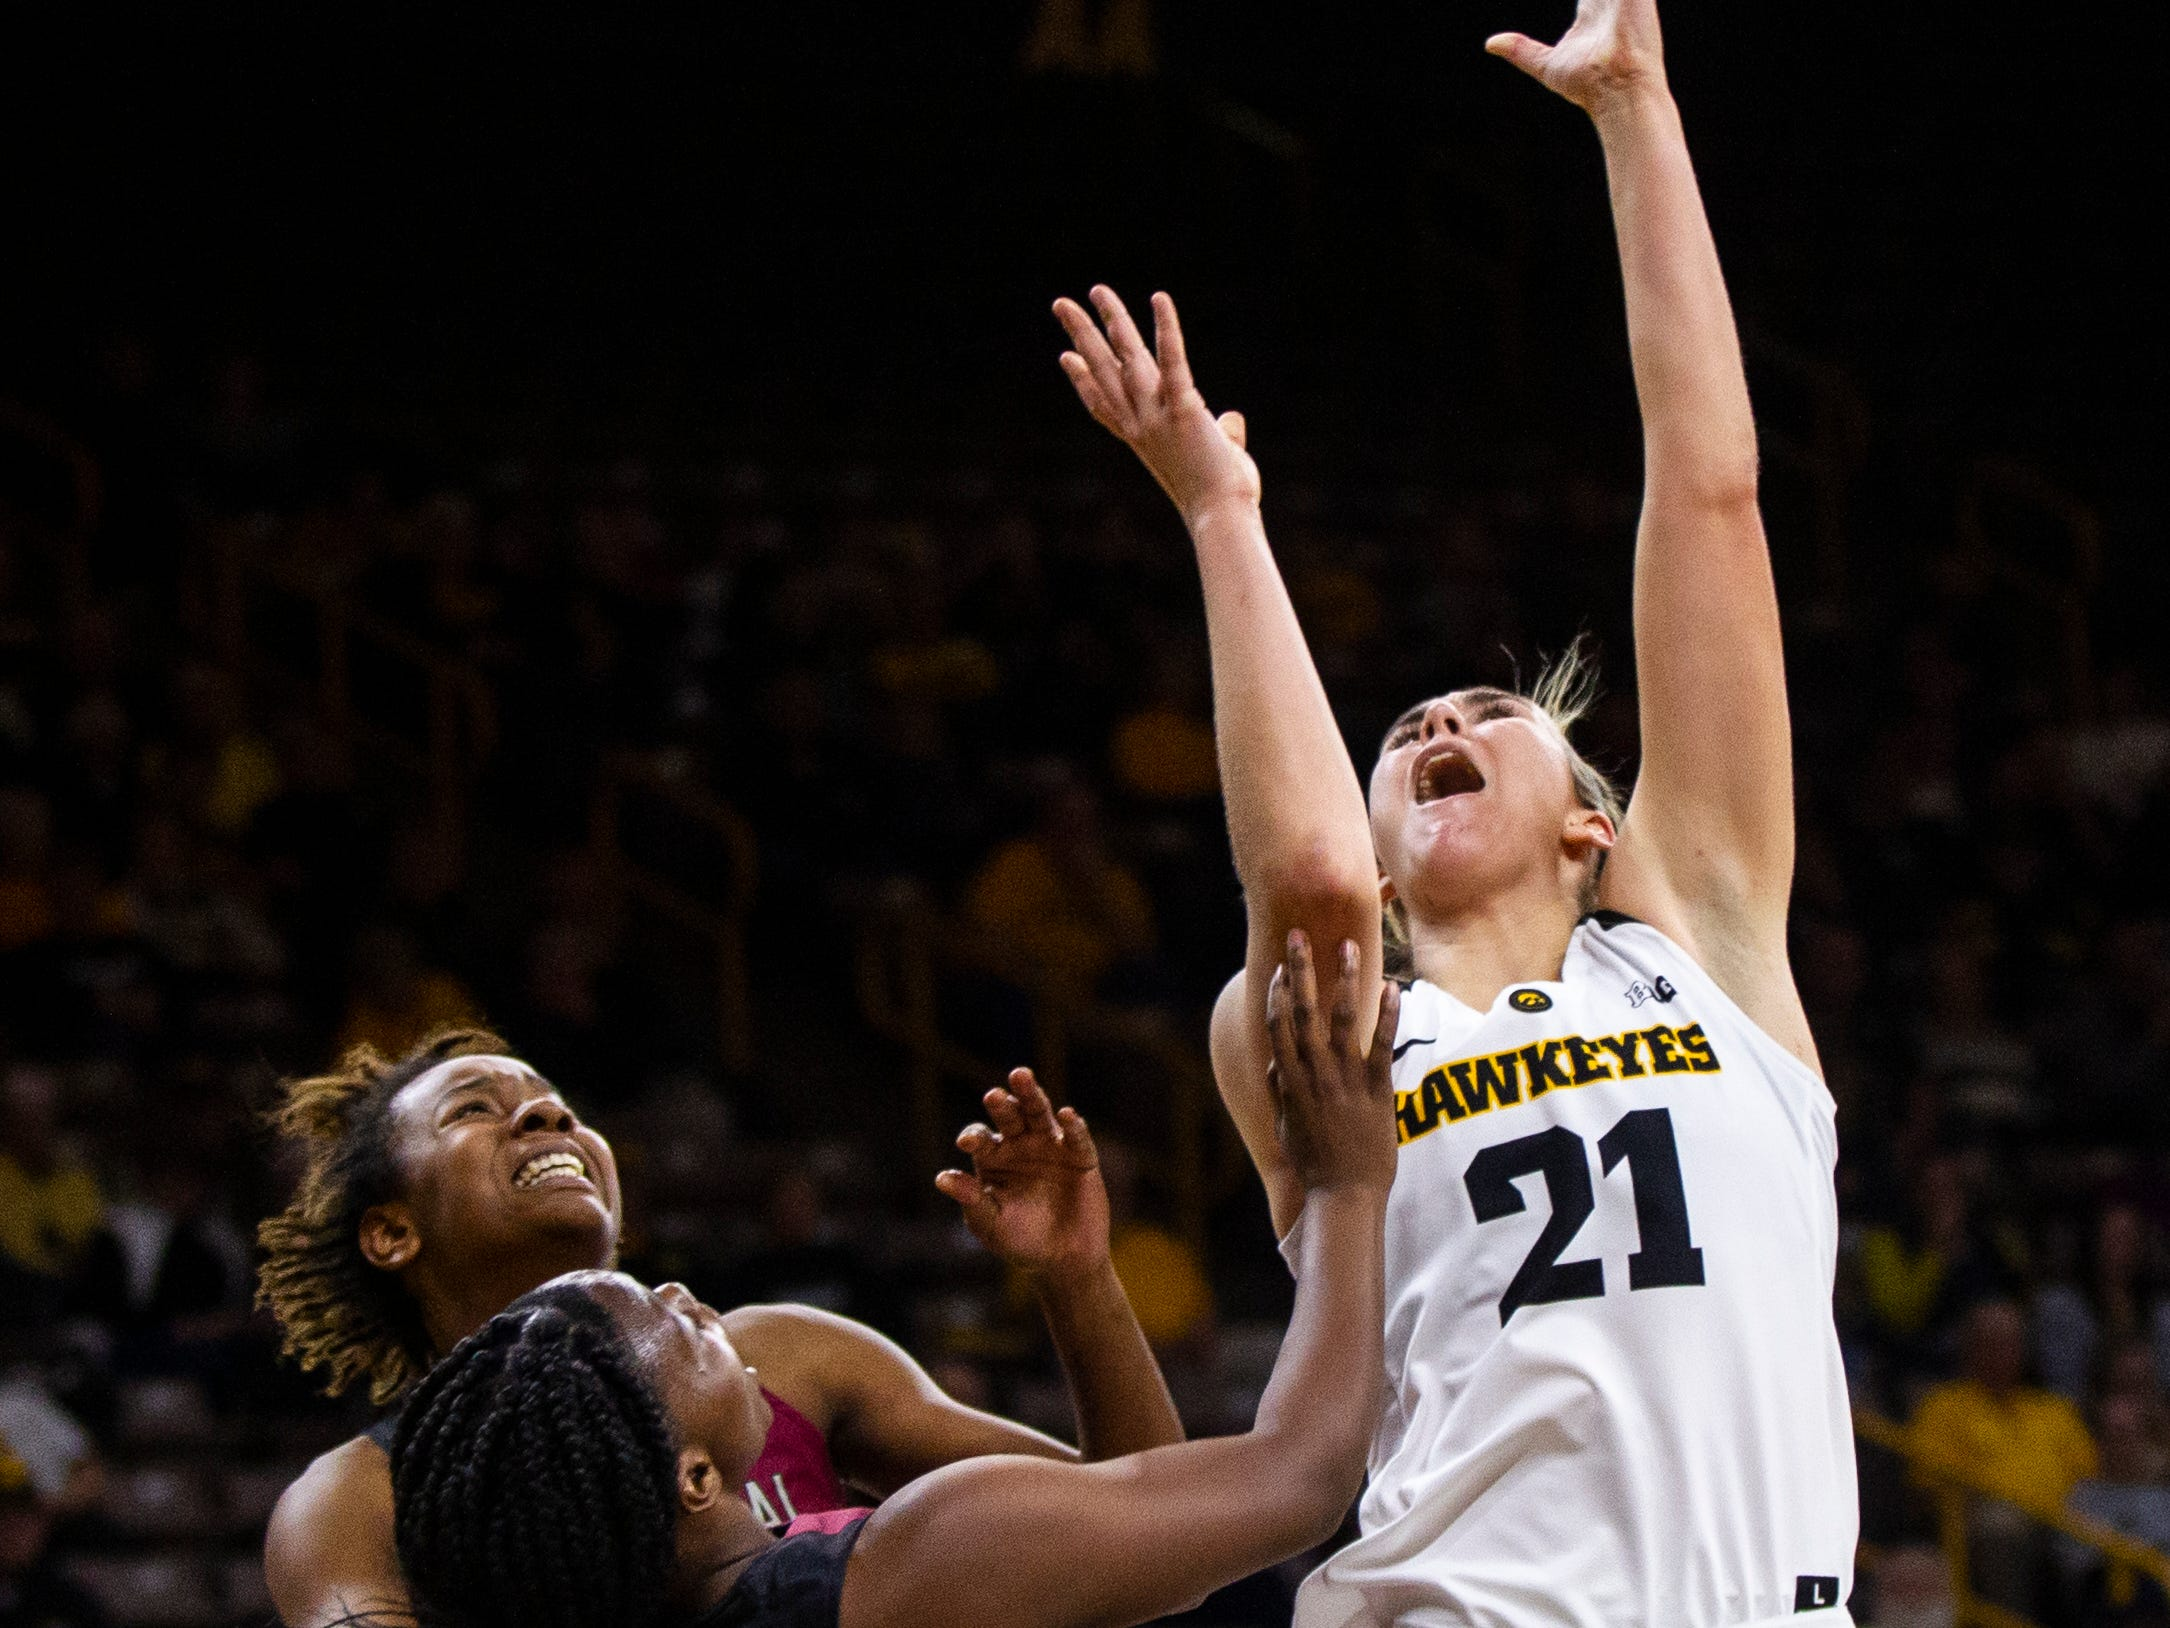 Iowa forward Hannah Stewart (21) attempts a shot during an NCAA women's basketball game on Saturday, Nov. 17, 2018, at Carver-Hawkeye Arena in Iowa City.